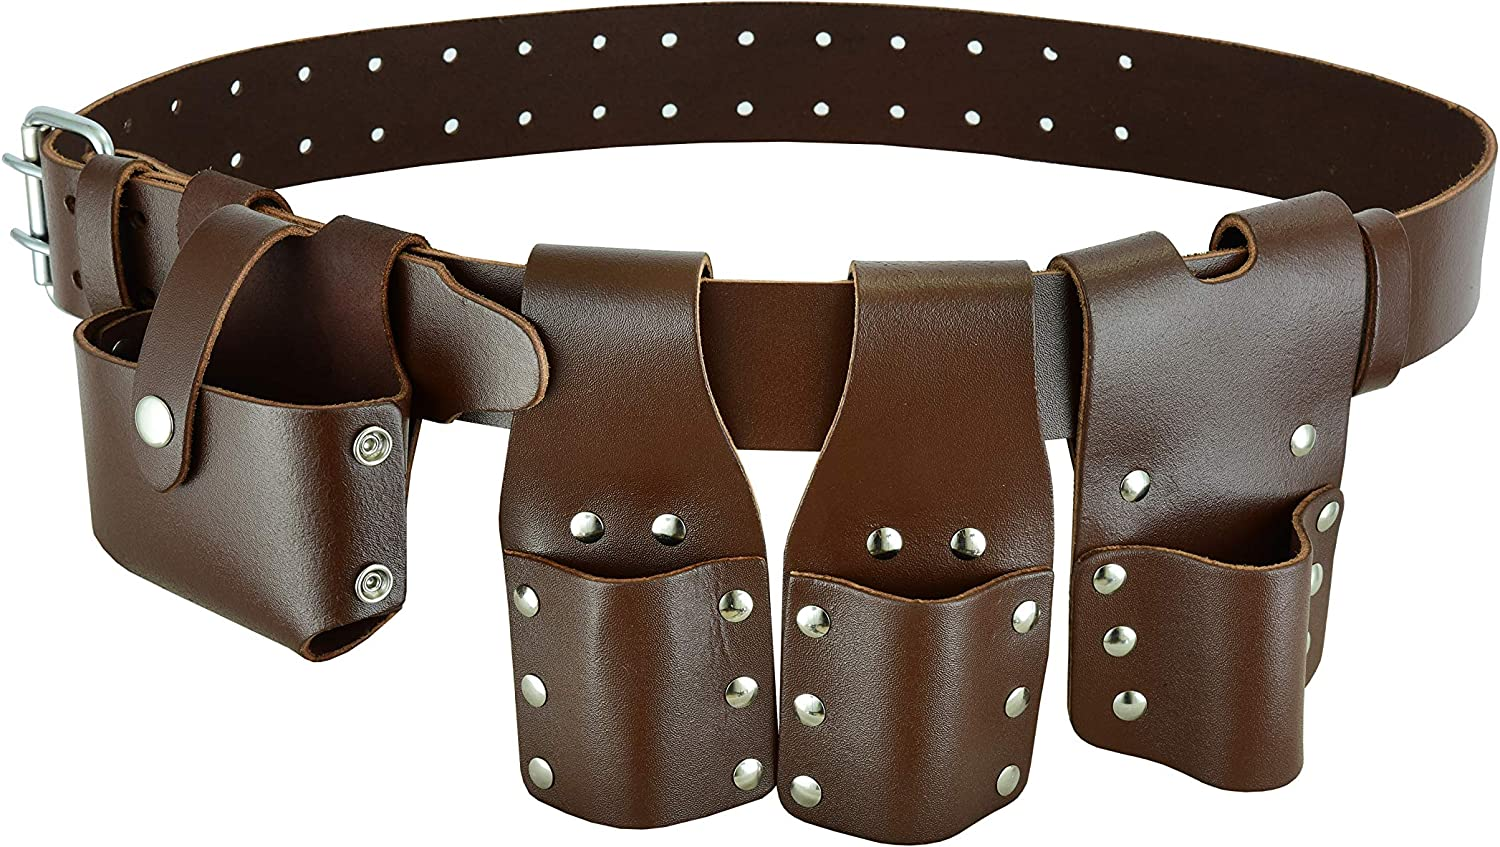 Scaffolding Handyman Contractor Carpenter Tool Ranking TOP13 Brown Bel Max 79% OFF Leather